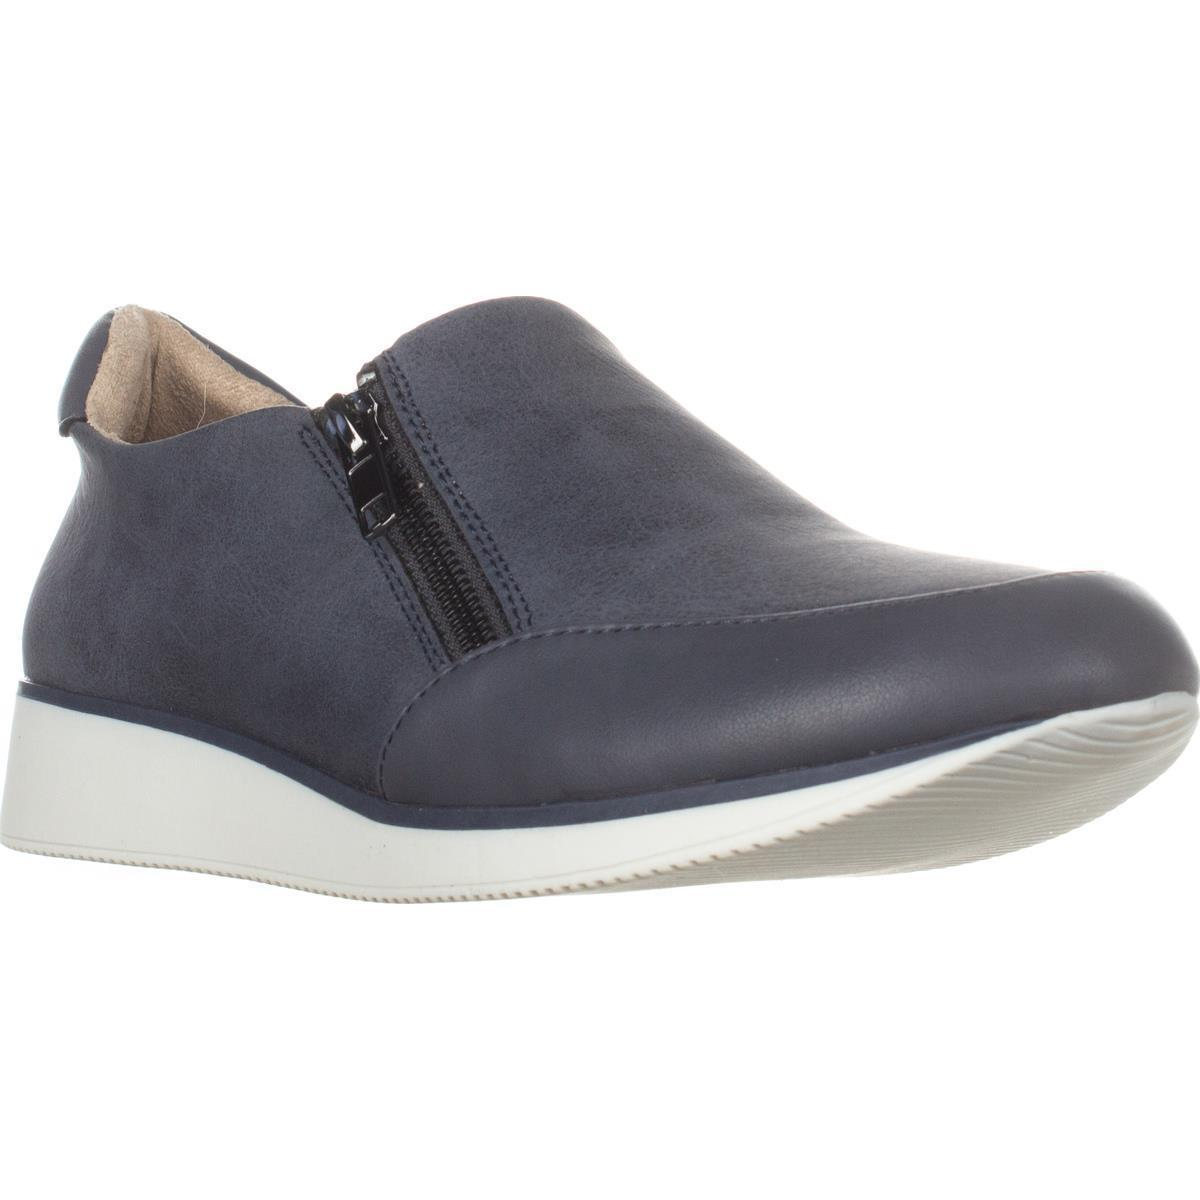 Womens Naturalizer Finny Wedge Fashion Sneakers, Paris Blue by Naturalizer